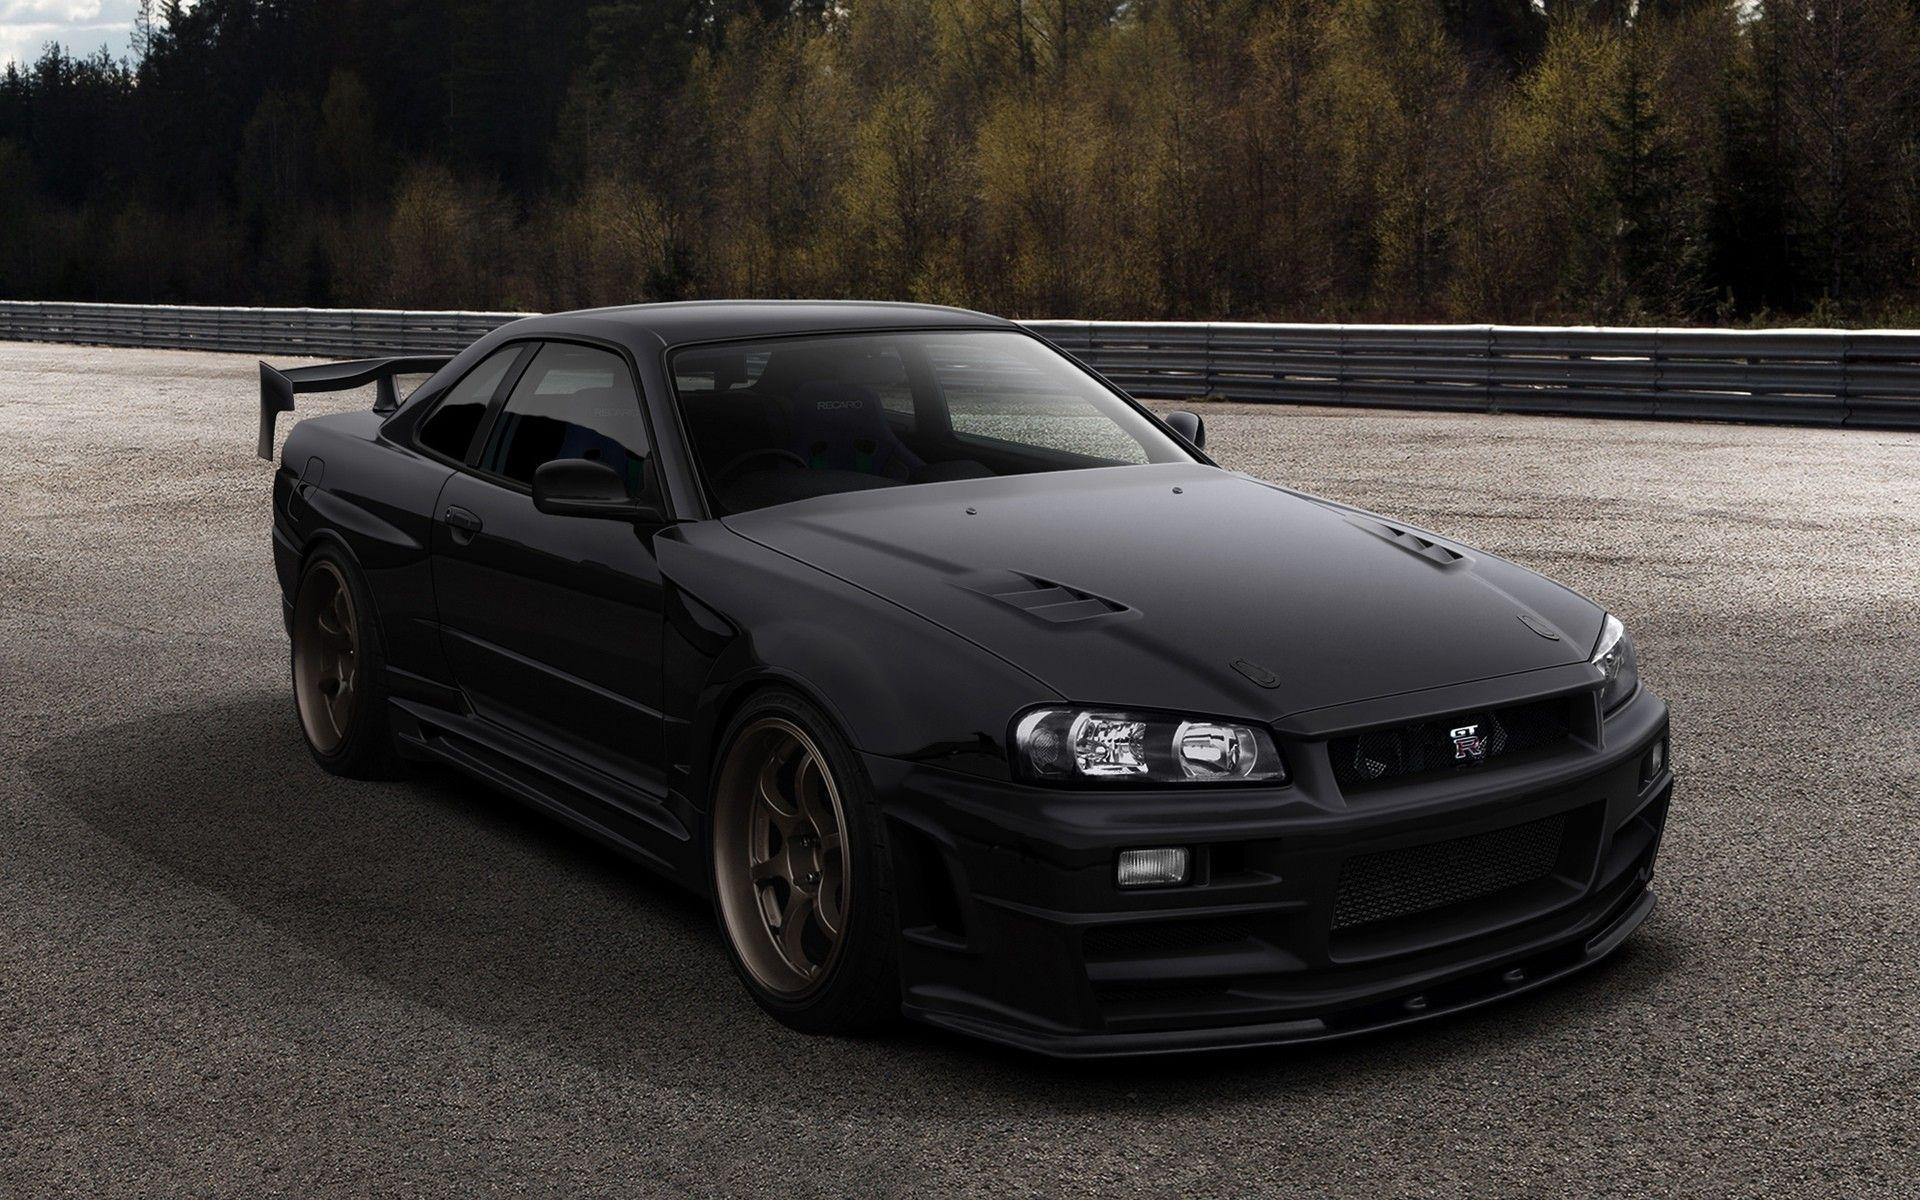 Nissan Skyline Gt R R34 Wallpaper Posted By Samantha Cunningham